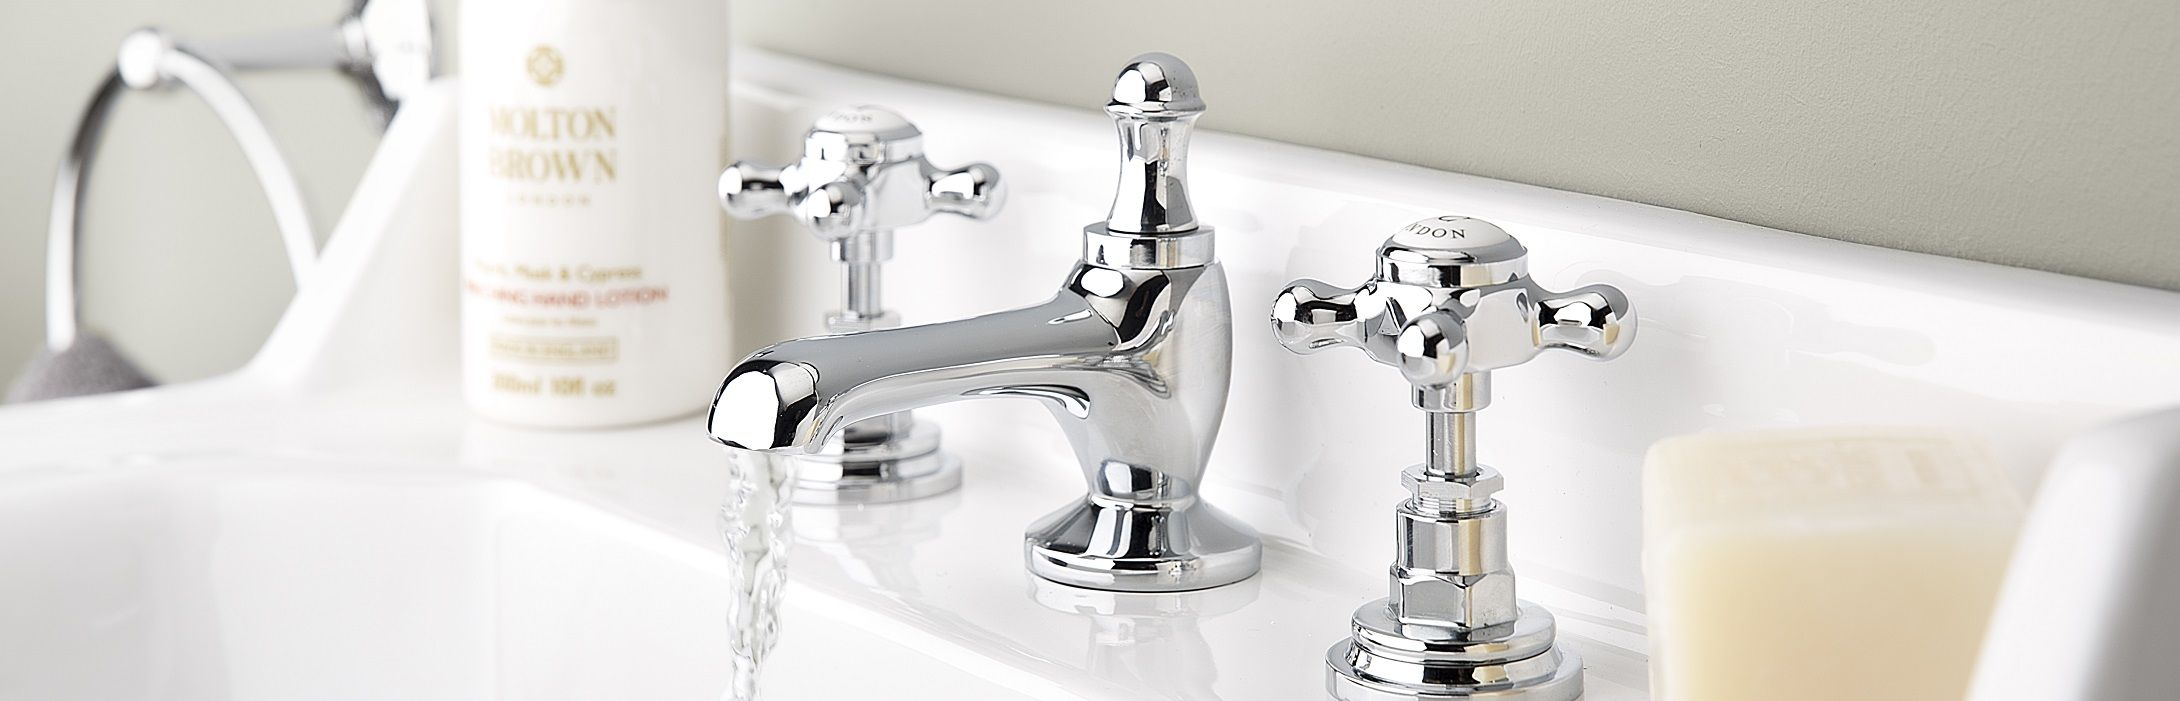 Tips to save water in the bathroom